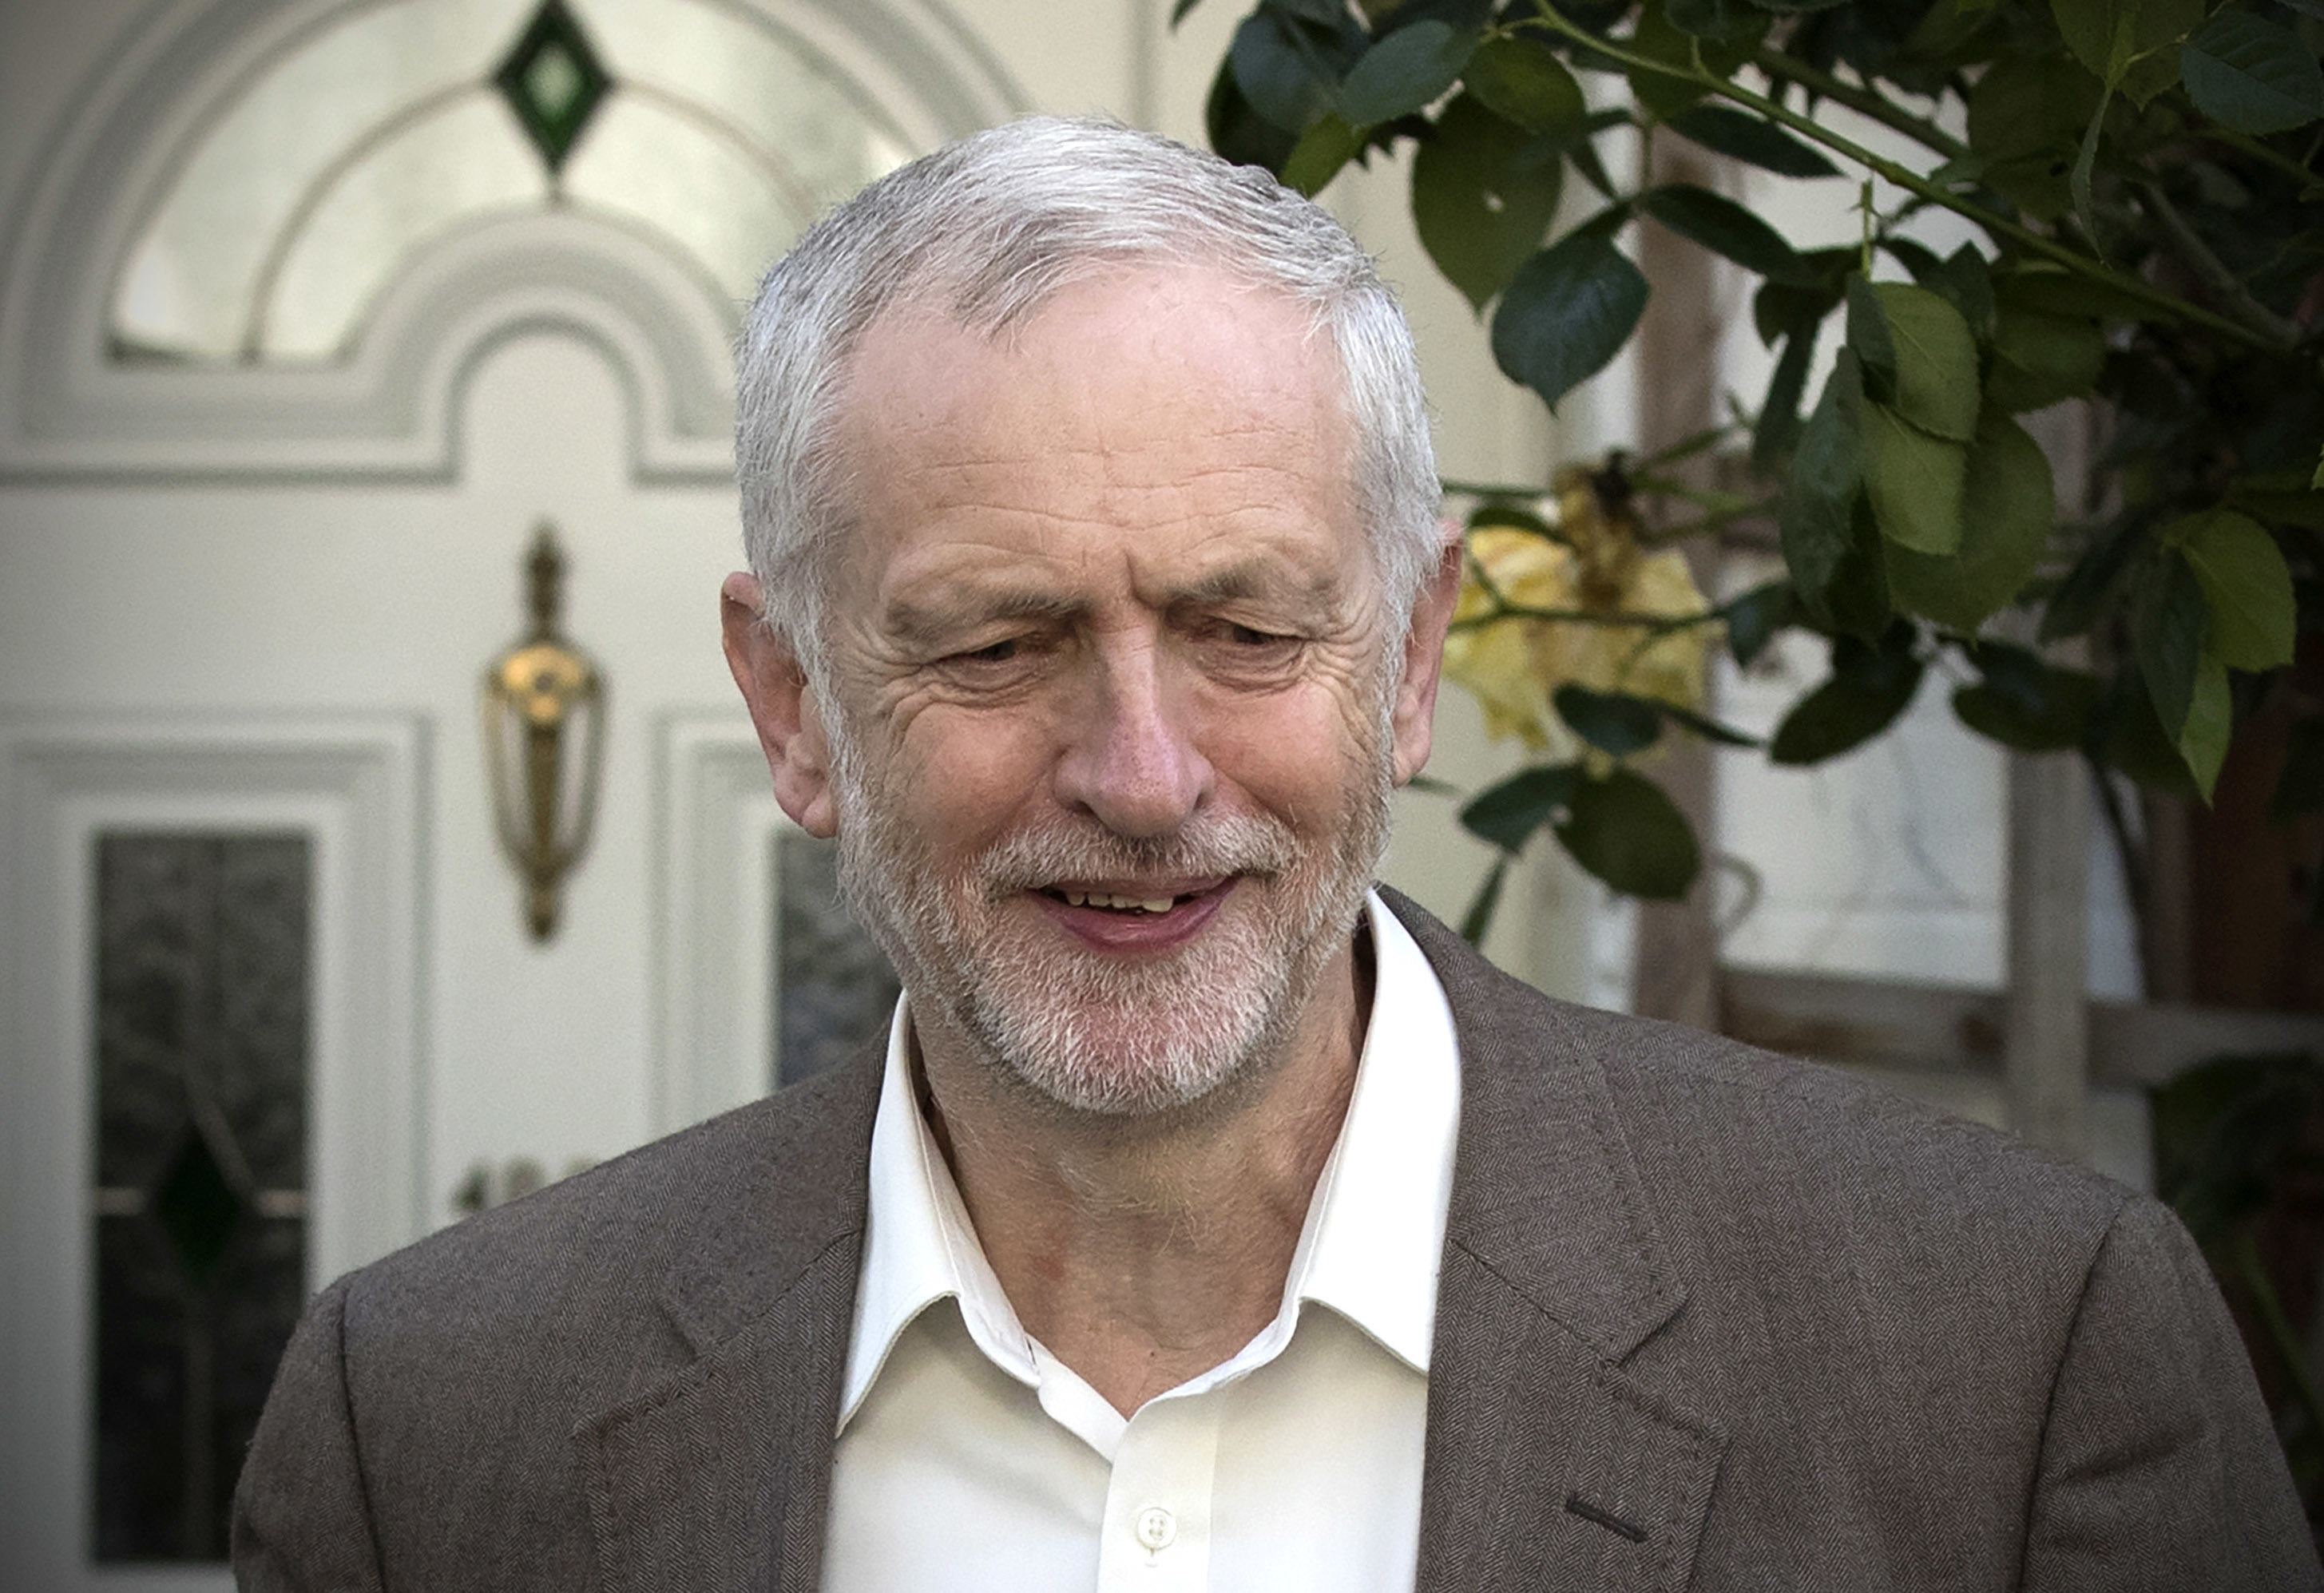 Labour leader Jeremy Corbyn is facing increased calls to resign as leader.